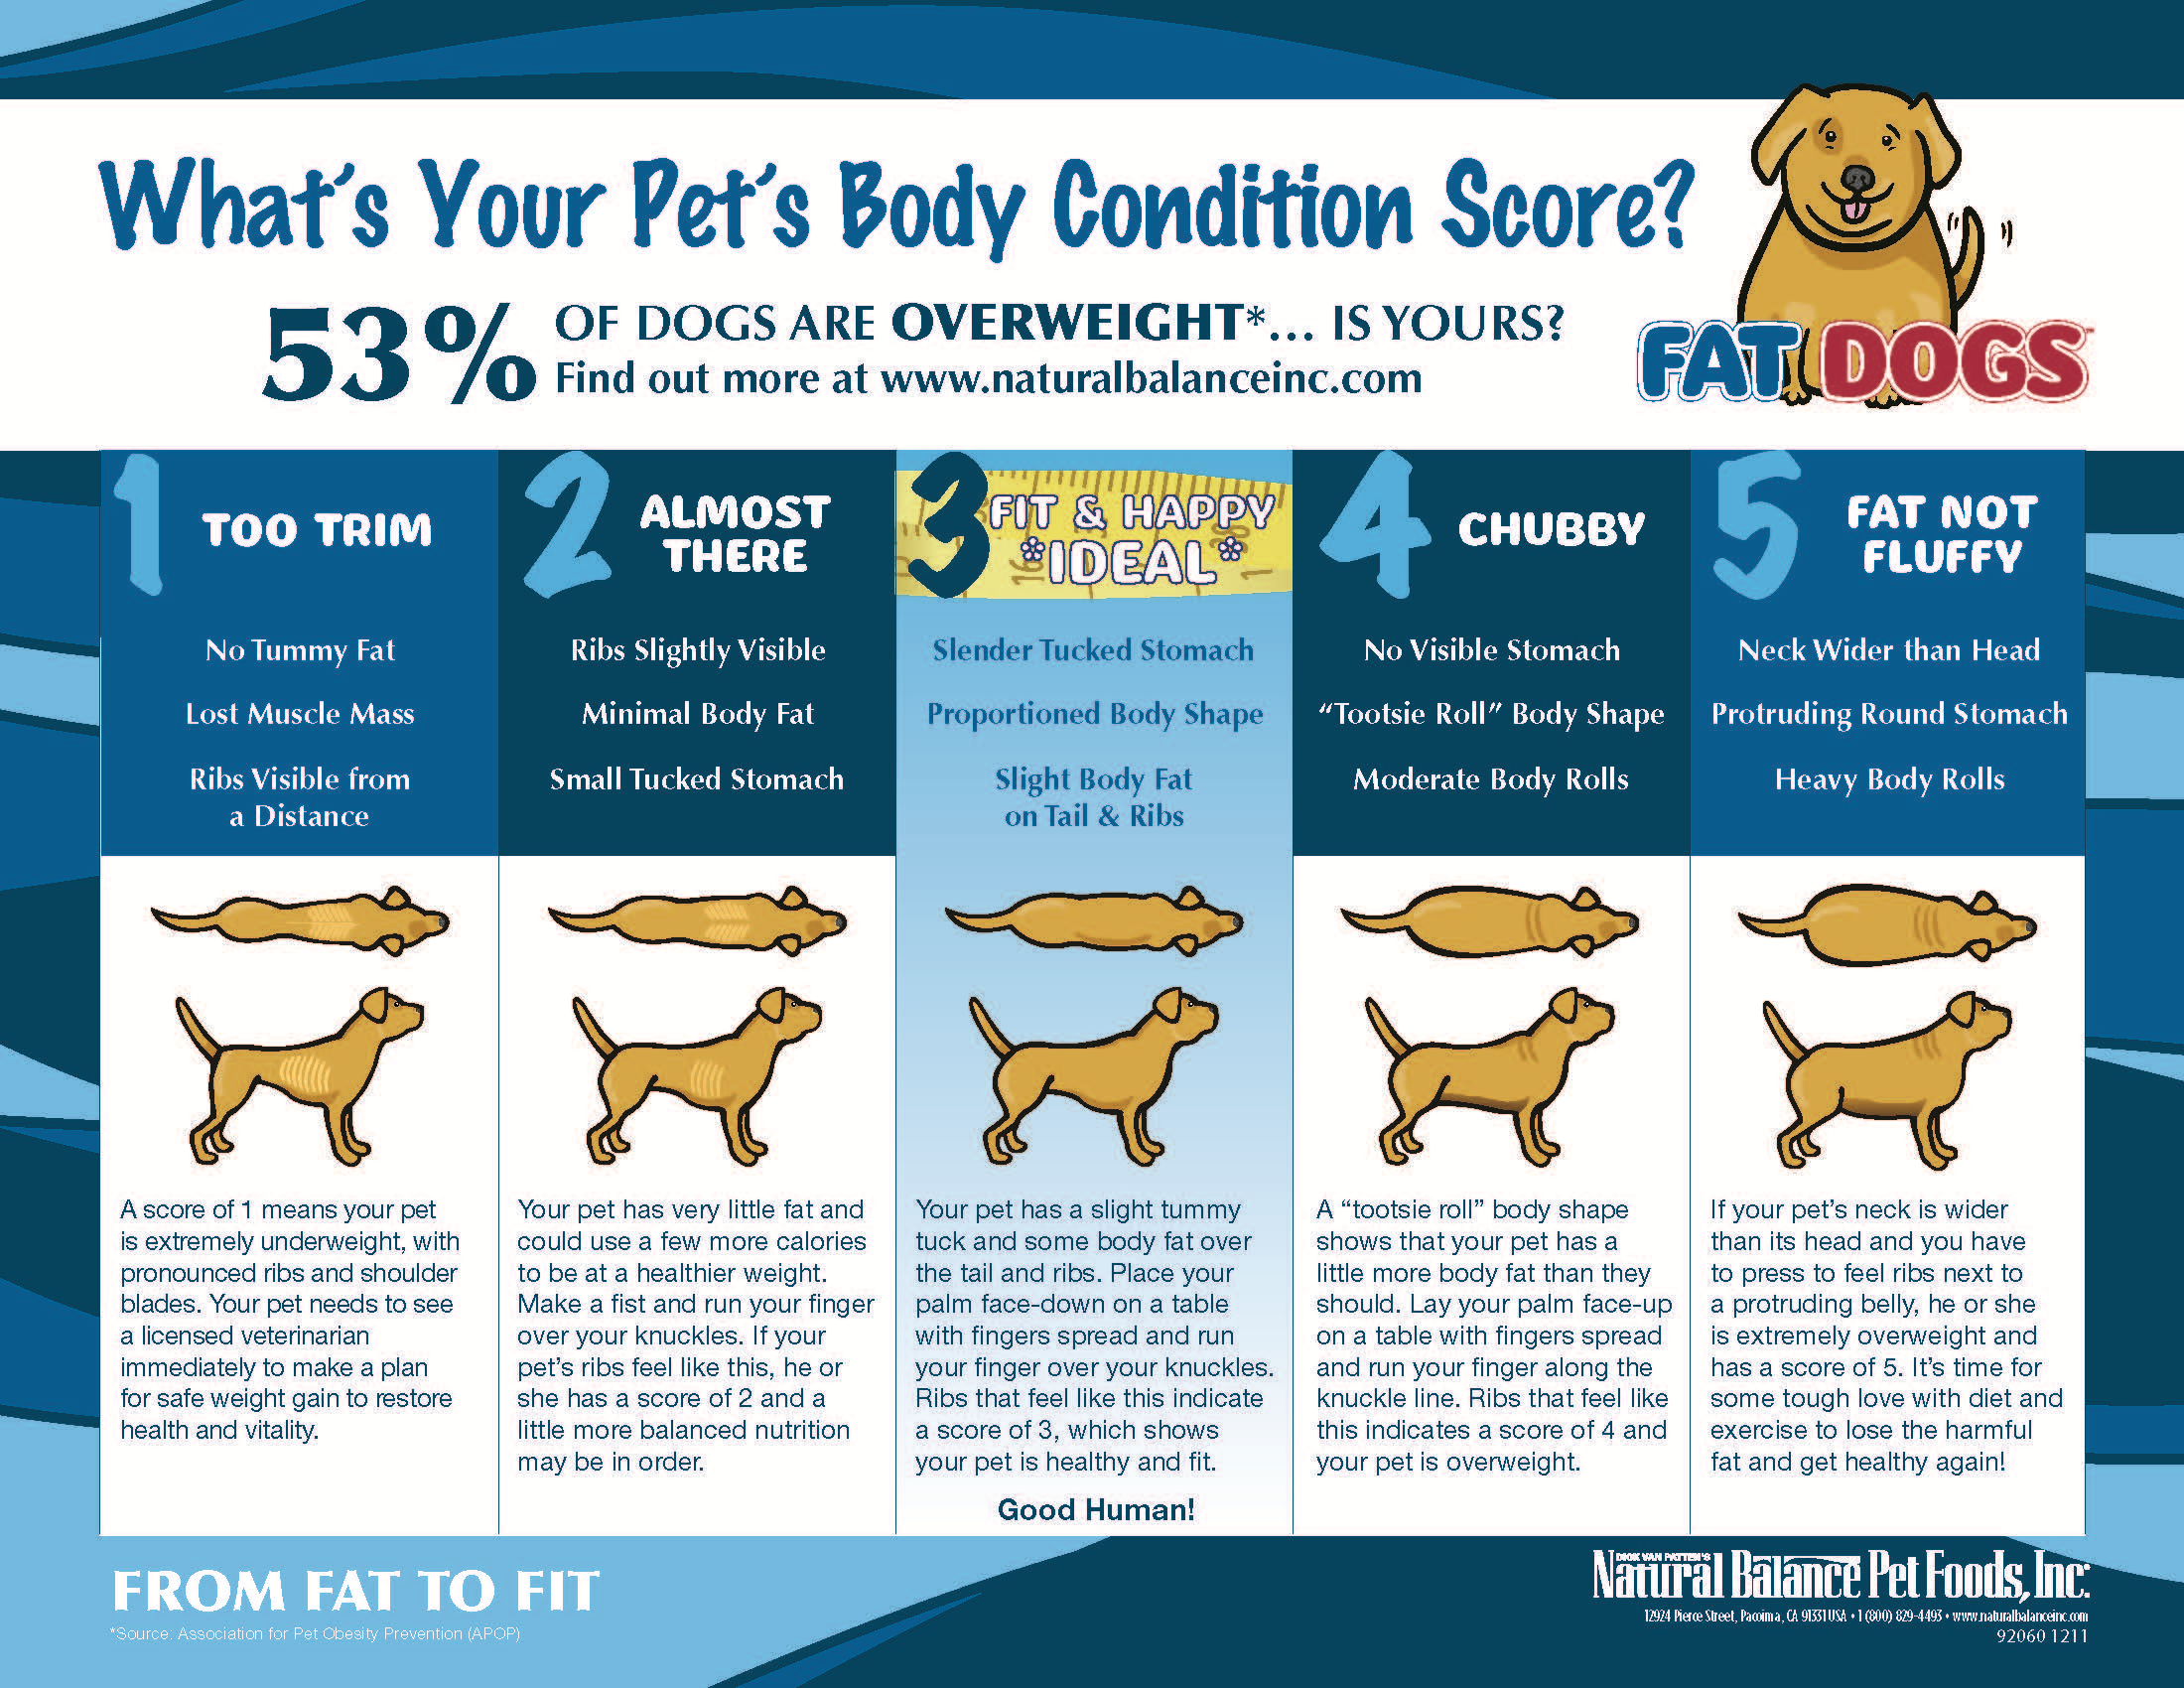 Important how to tell if your dog is overweight iheartdogs compare your dogs body shape to a chart like this one geenschuldenfo Image collections